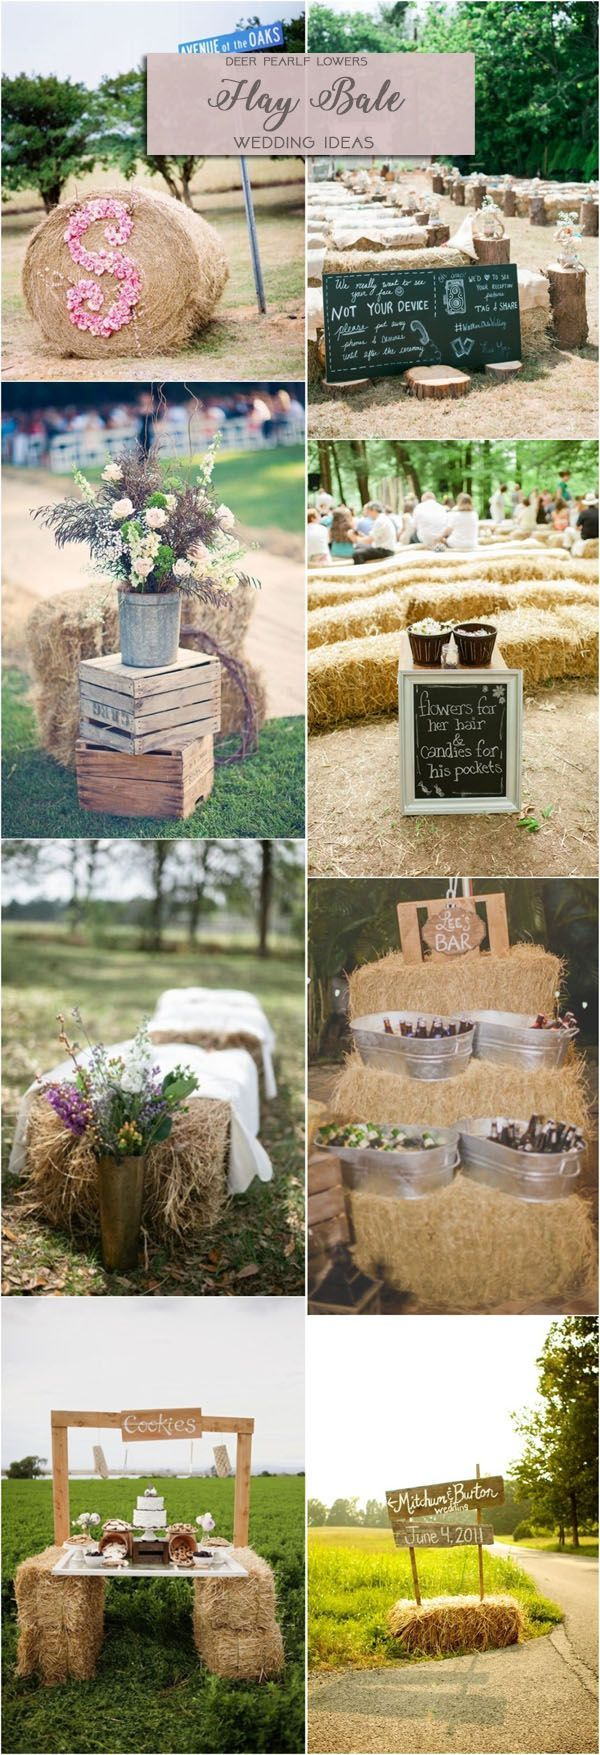 Rustic country farm hay bale wedding ideas / http://www.deerpearlflowers.com/rustic-wedding-themes-ideas/